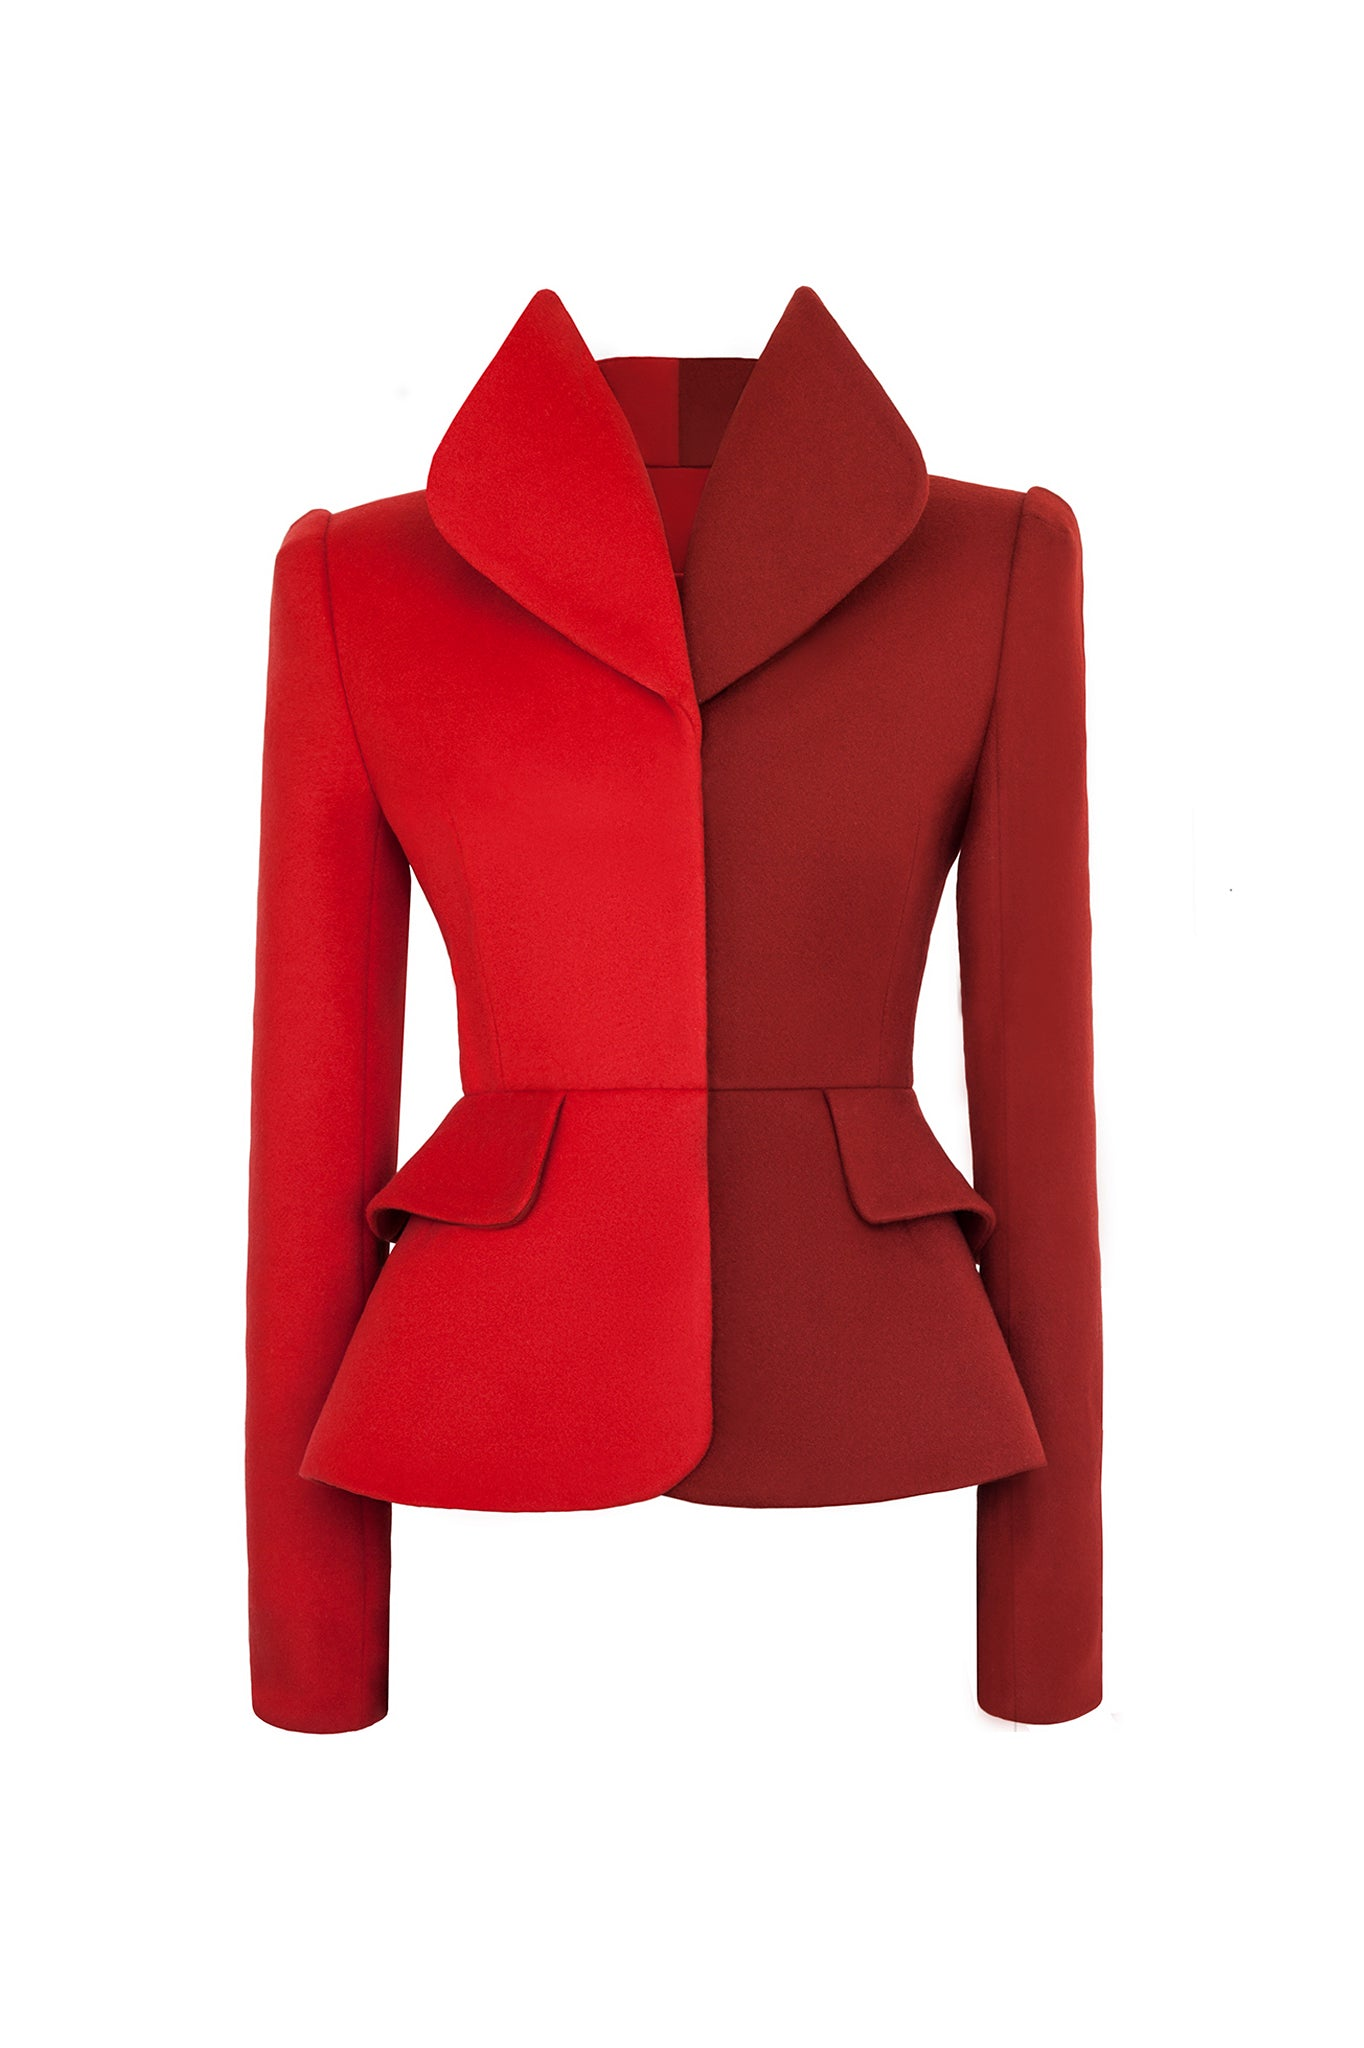 CIMONE's AW17 Dietrich jacket. Named after Marlene! This sculptural tailored and fitted suit jacket is fabricated in two-tone  red and burnt orange wool.